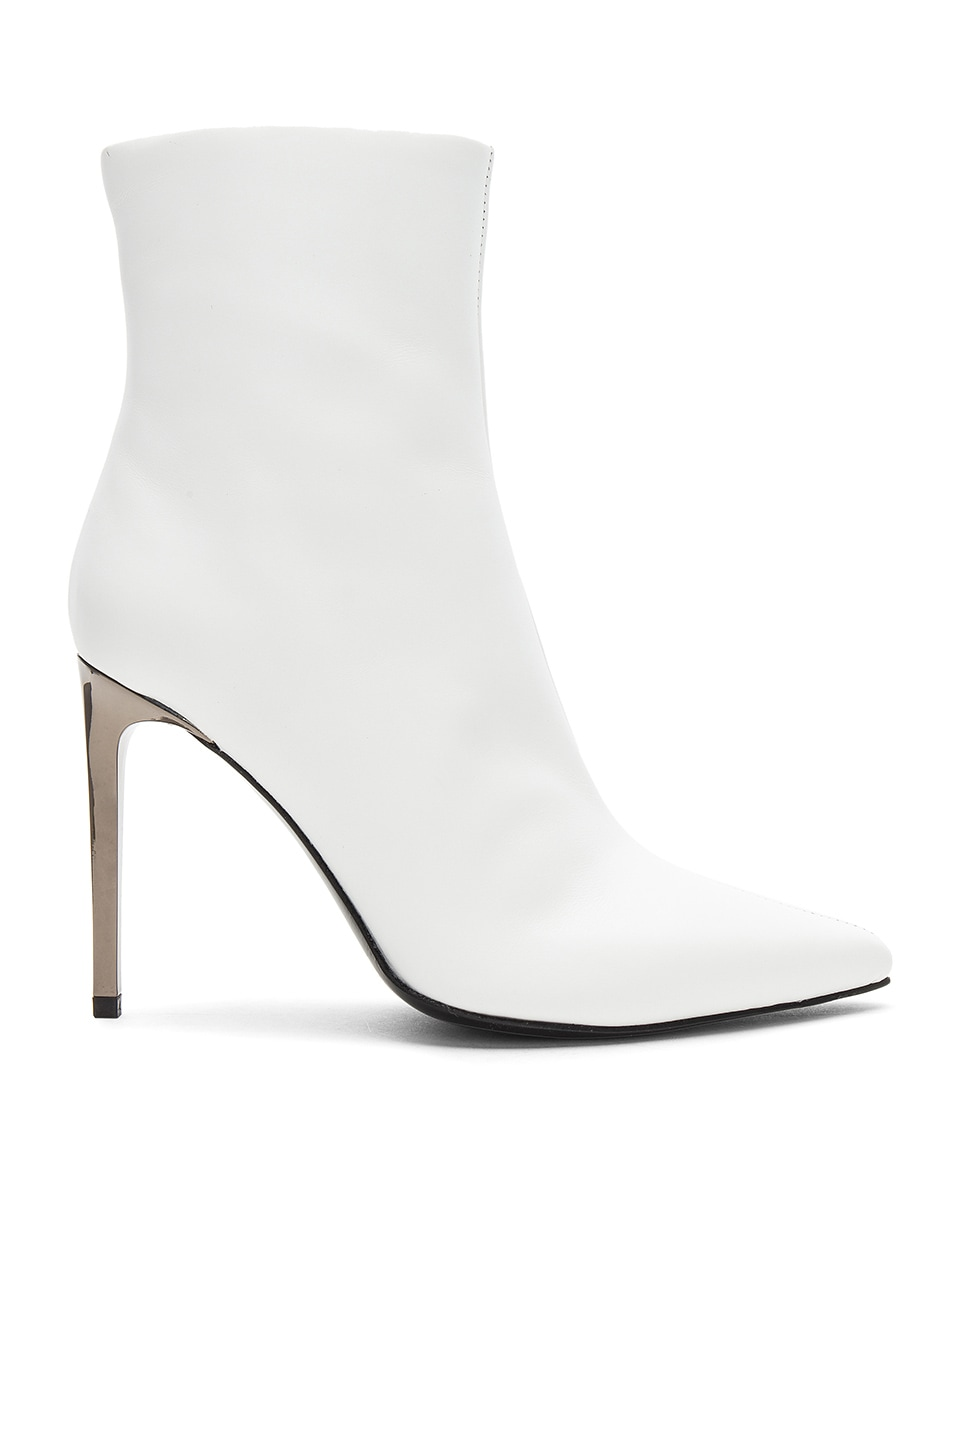 Rag & Bone Wes Boot in White